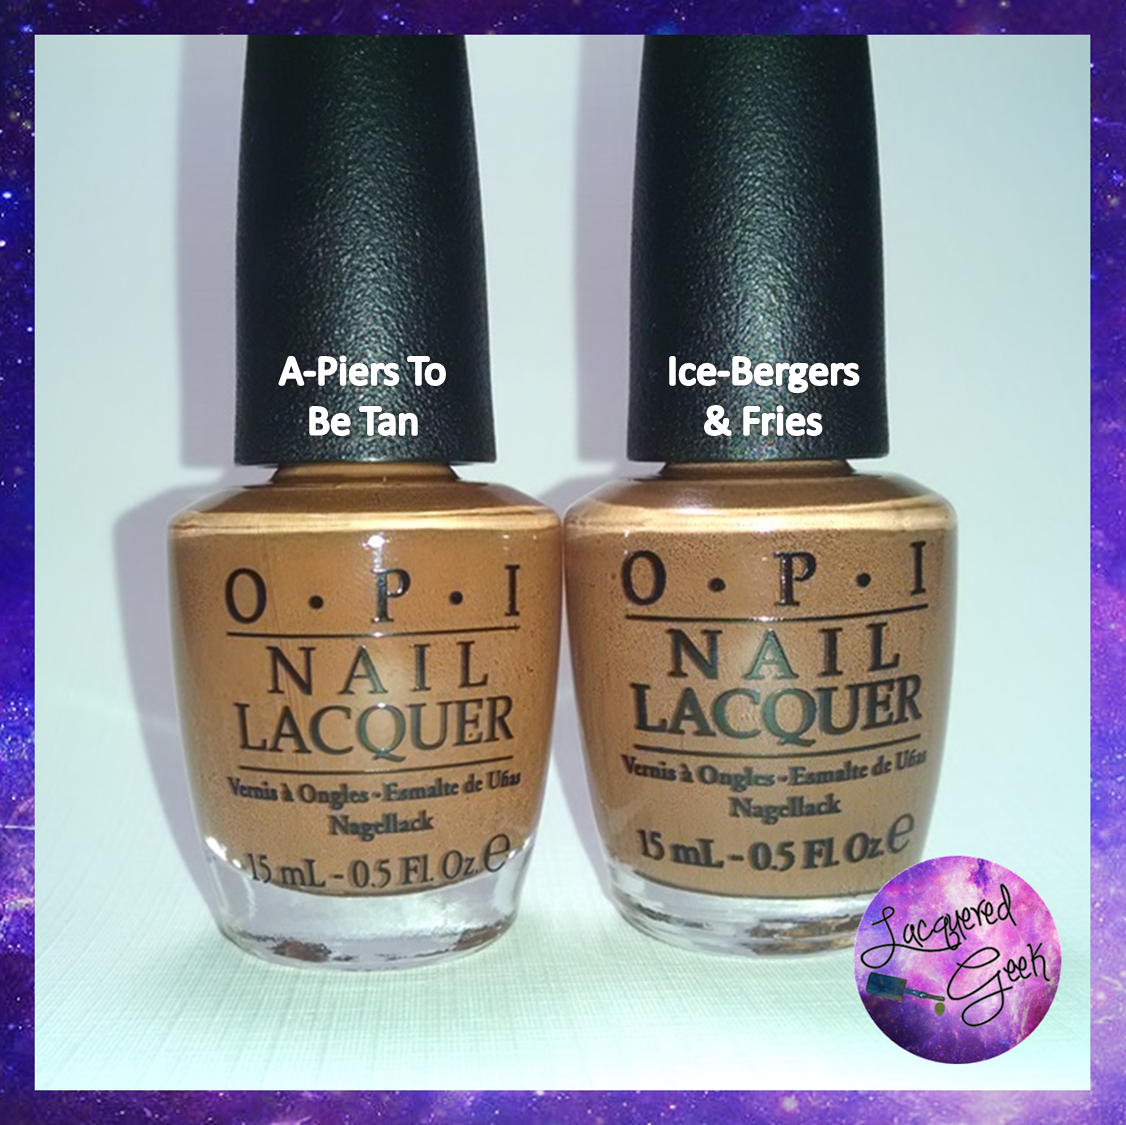 OPI Ice-Bergers & Fries and A-Piers To Be Tan